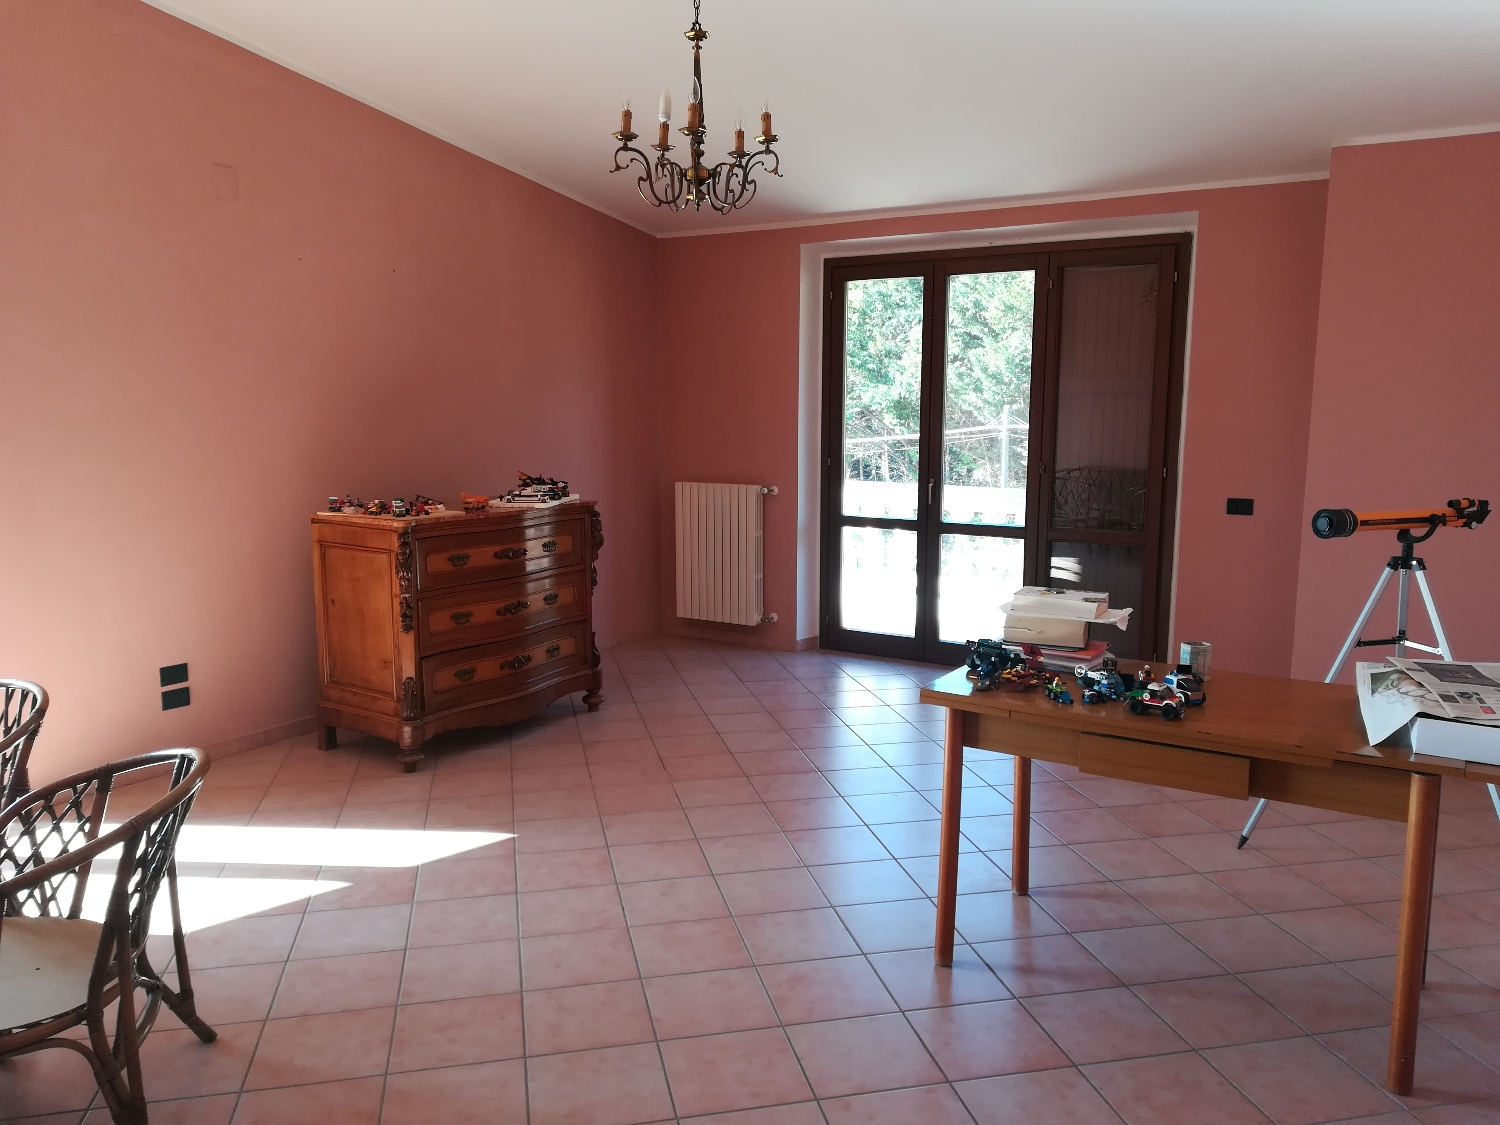 Country Houses Country Houses for sale Penne (PE), Villa Valentino - Penne - EUR 432.293 580